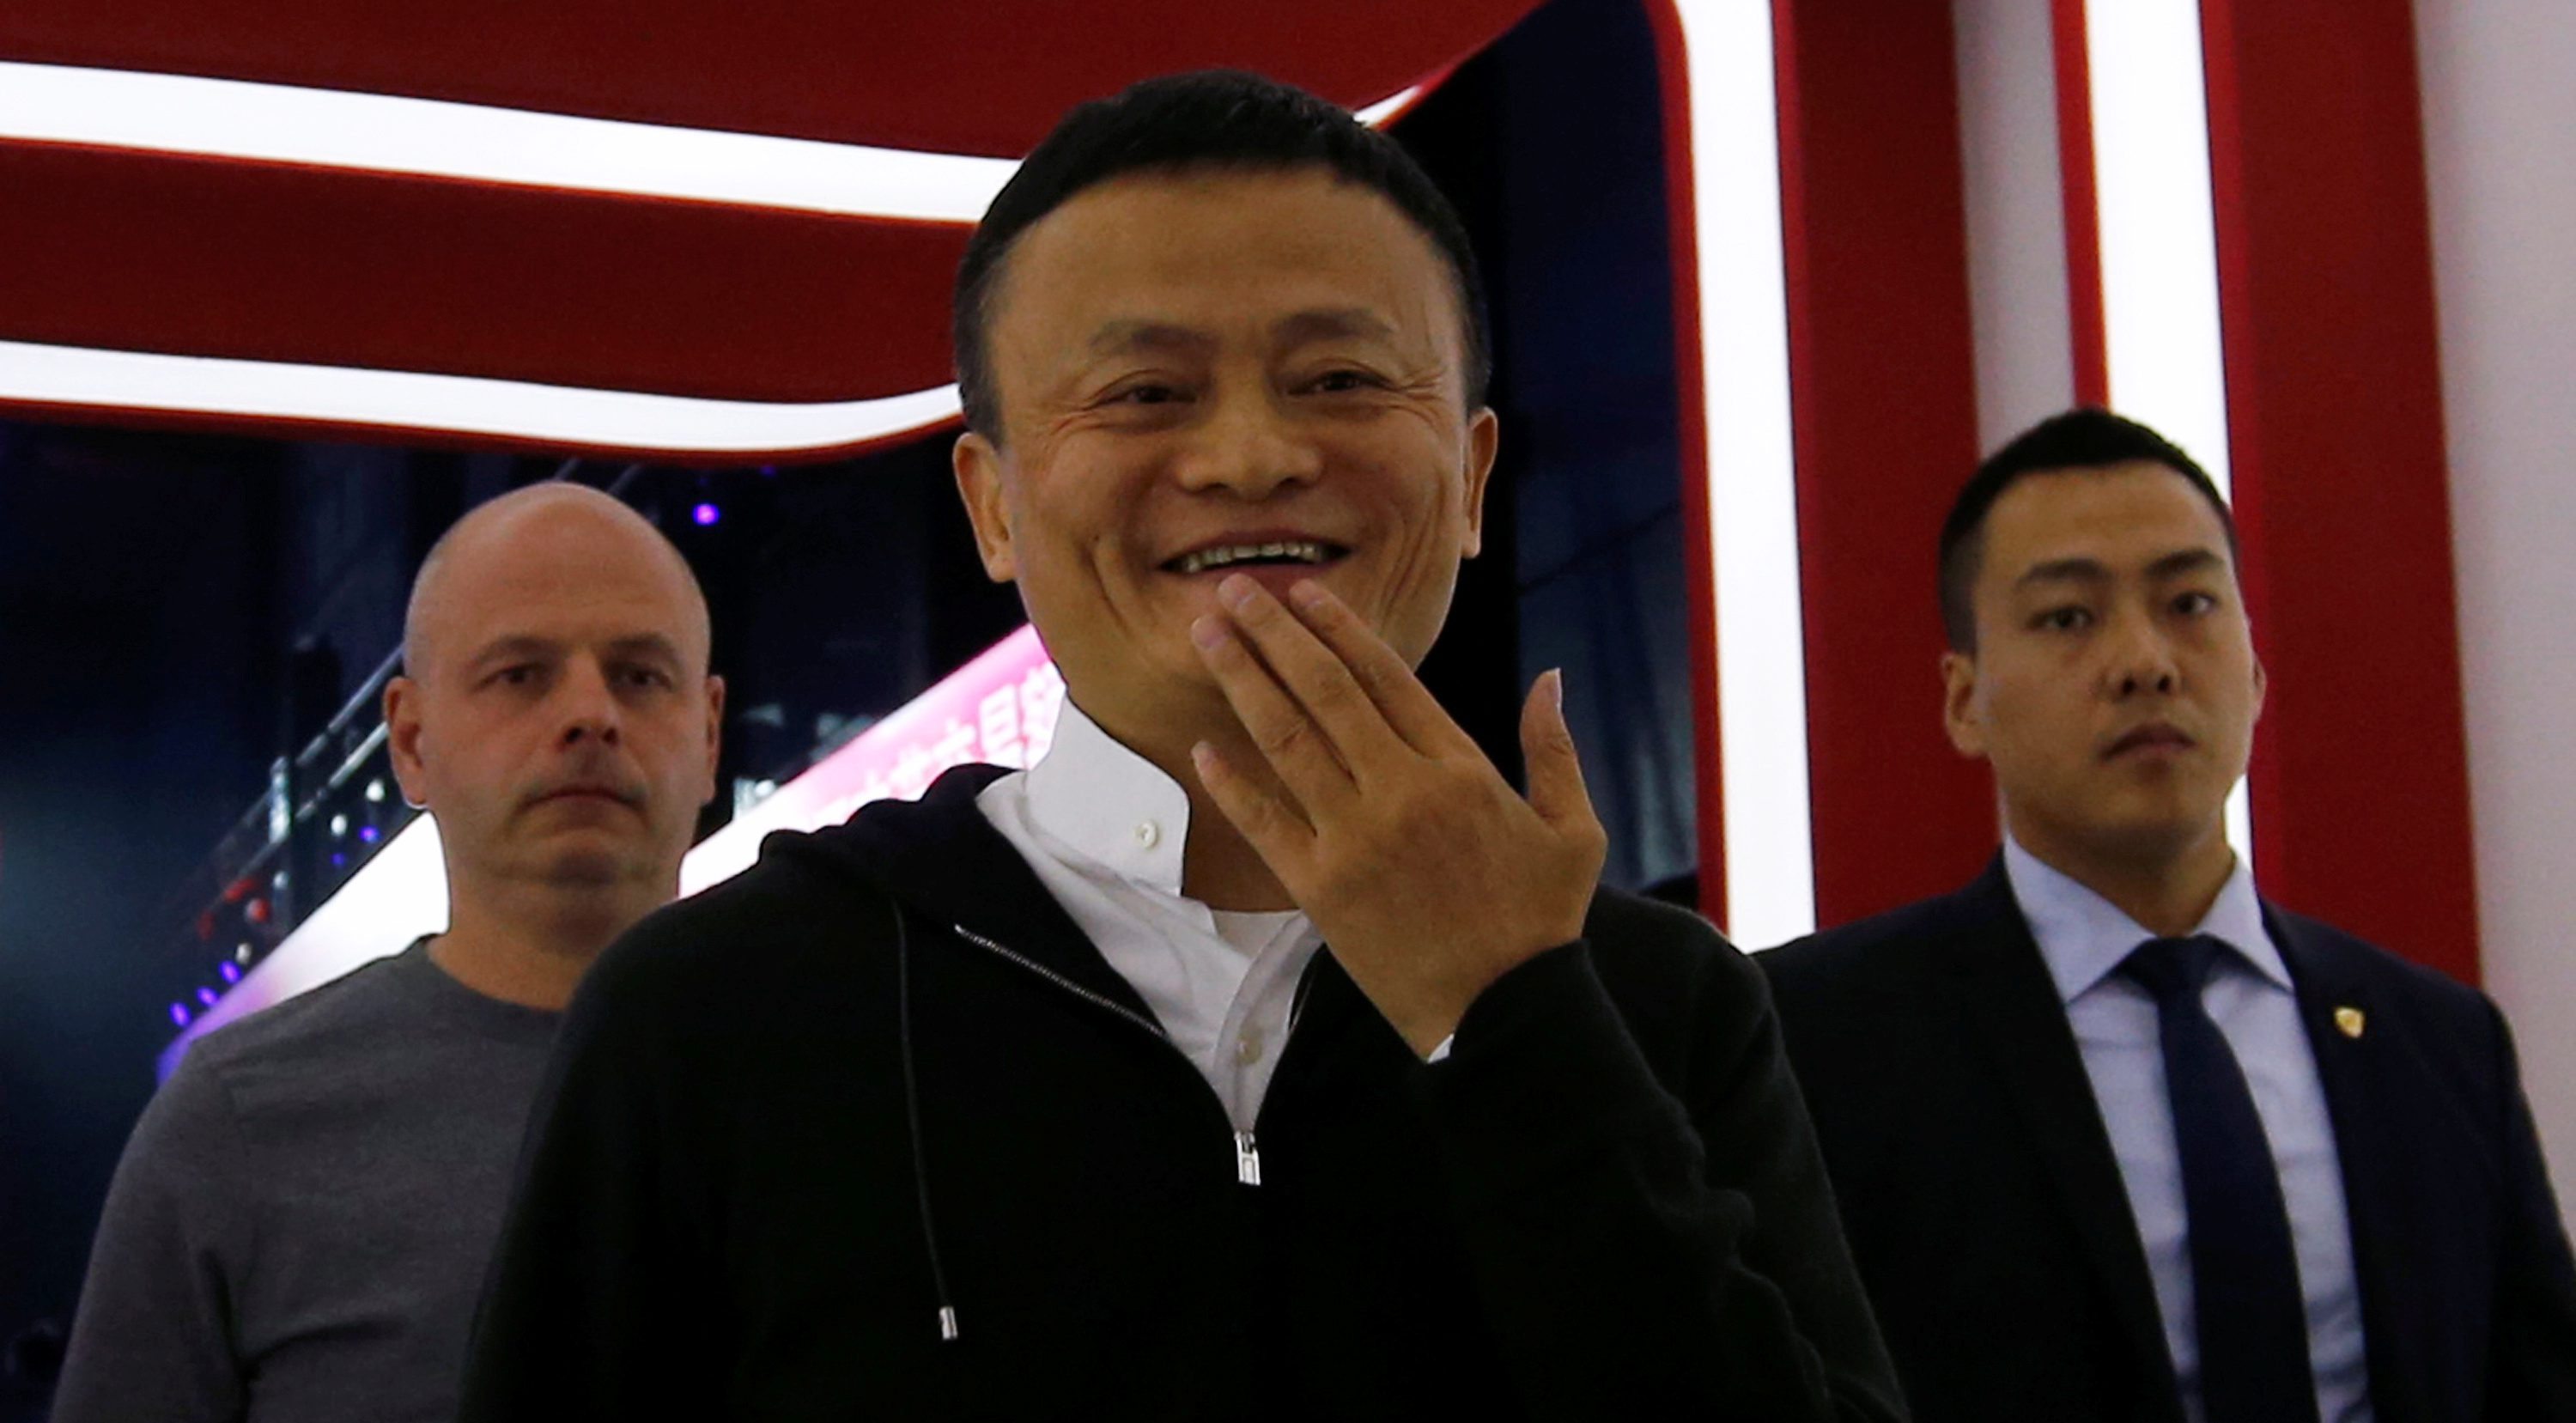 Founder and Executive Chairman of Alibaba Group Jack Ma leaves after speaking at Alibaba Group's 11.11 Singles' Day global shopping festival in Shenzhen, China, November 11, 2016. REUTERS/Bobby Yip - RTX2T8DH